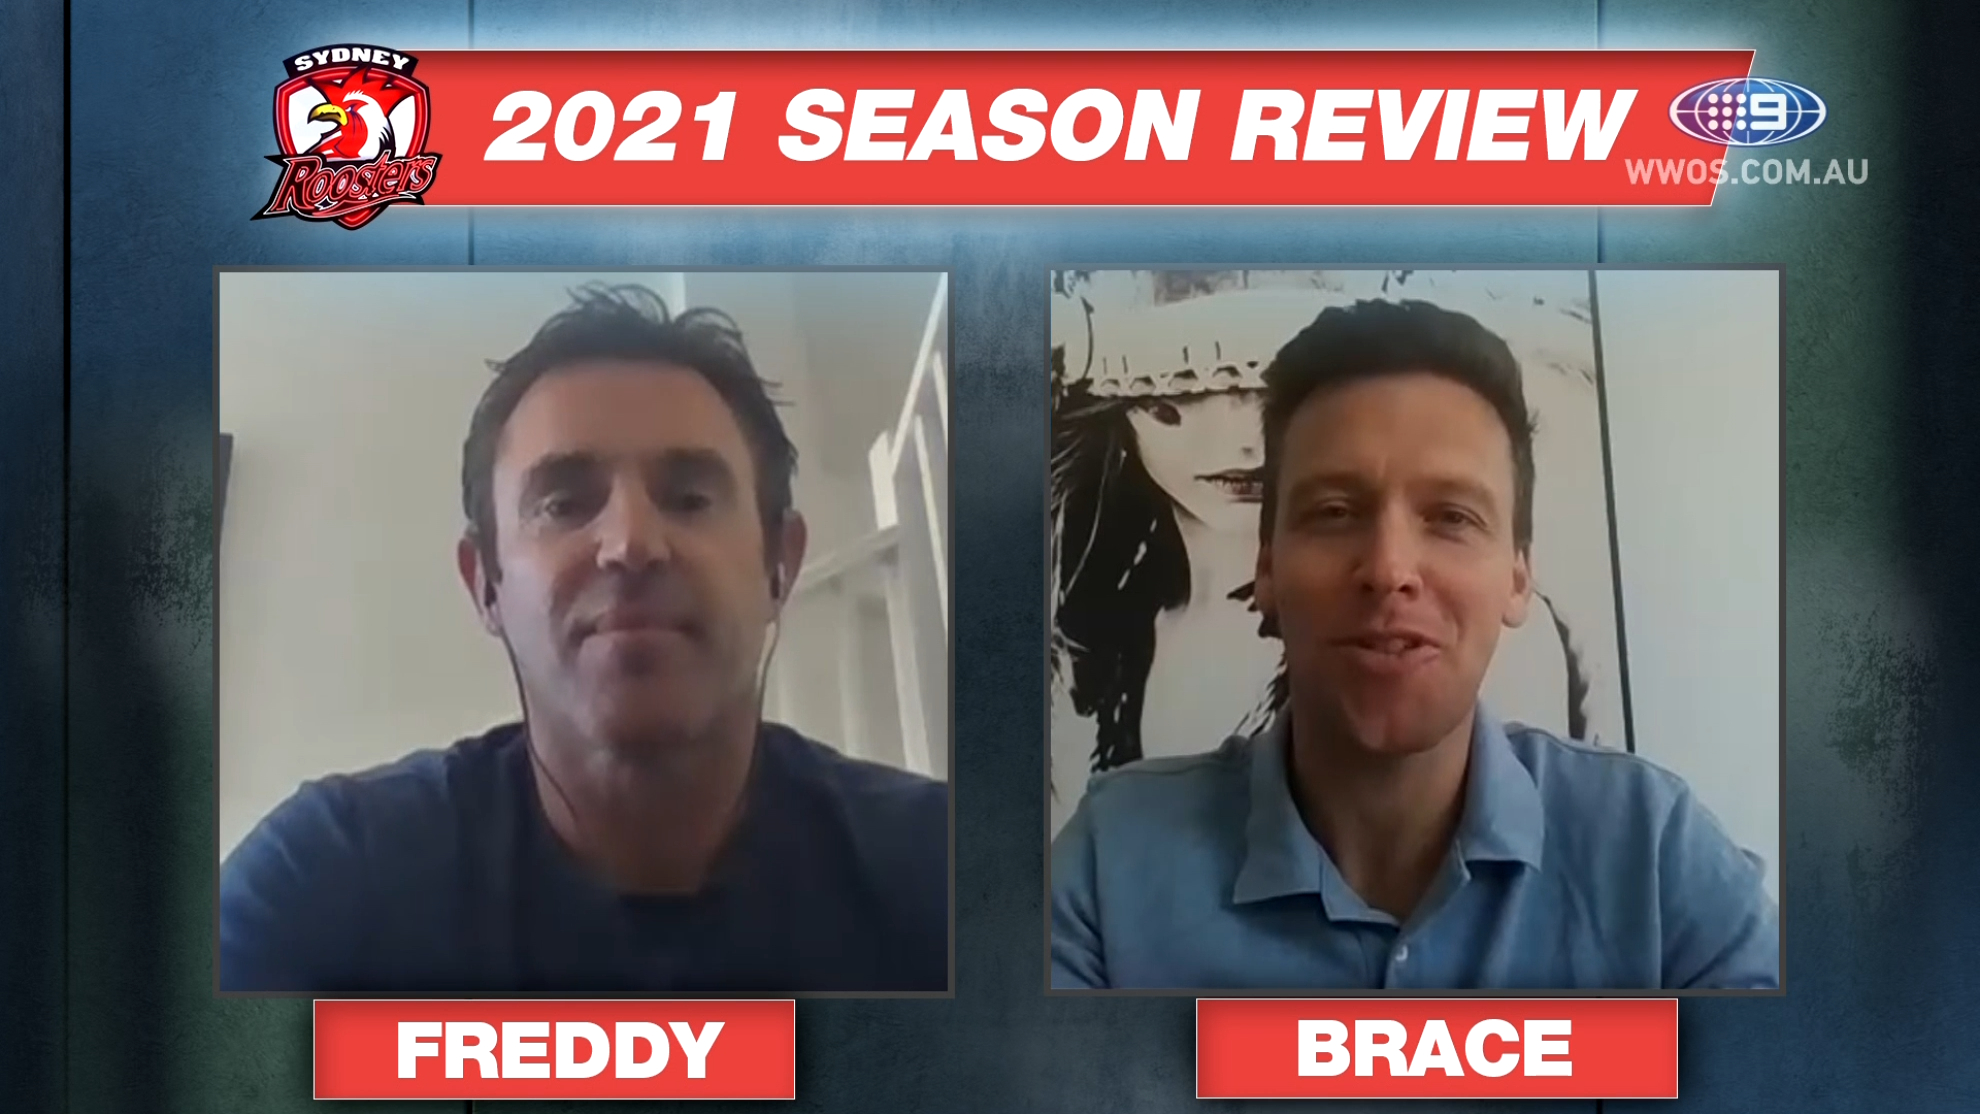 2021 Season Review: The Roosters valiant year